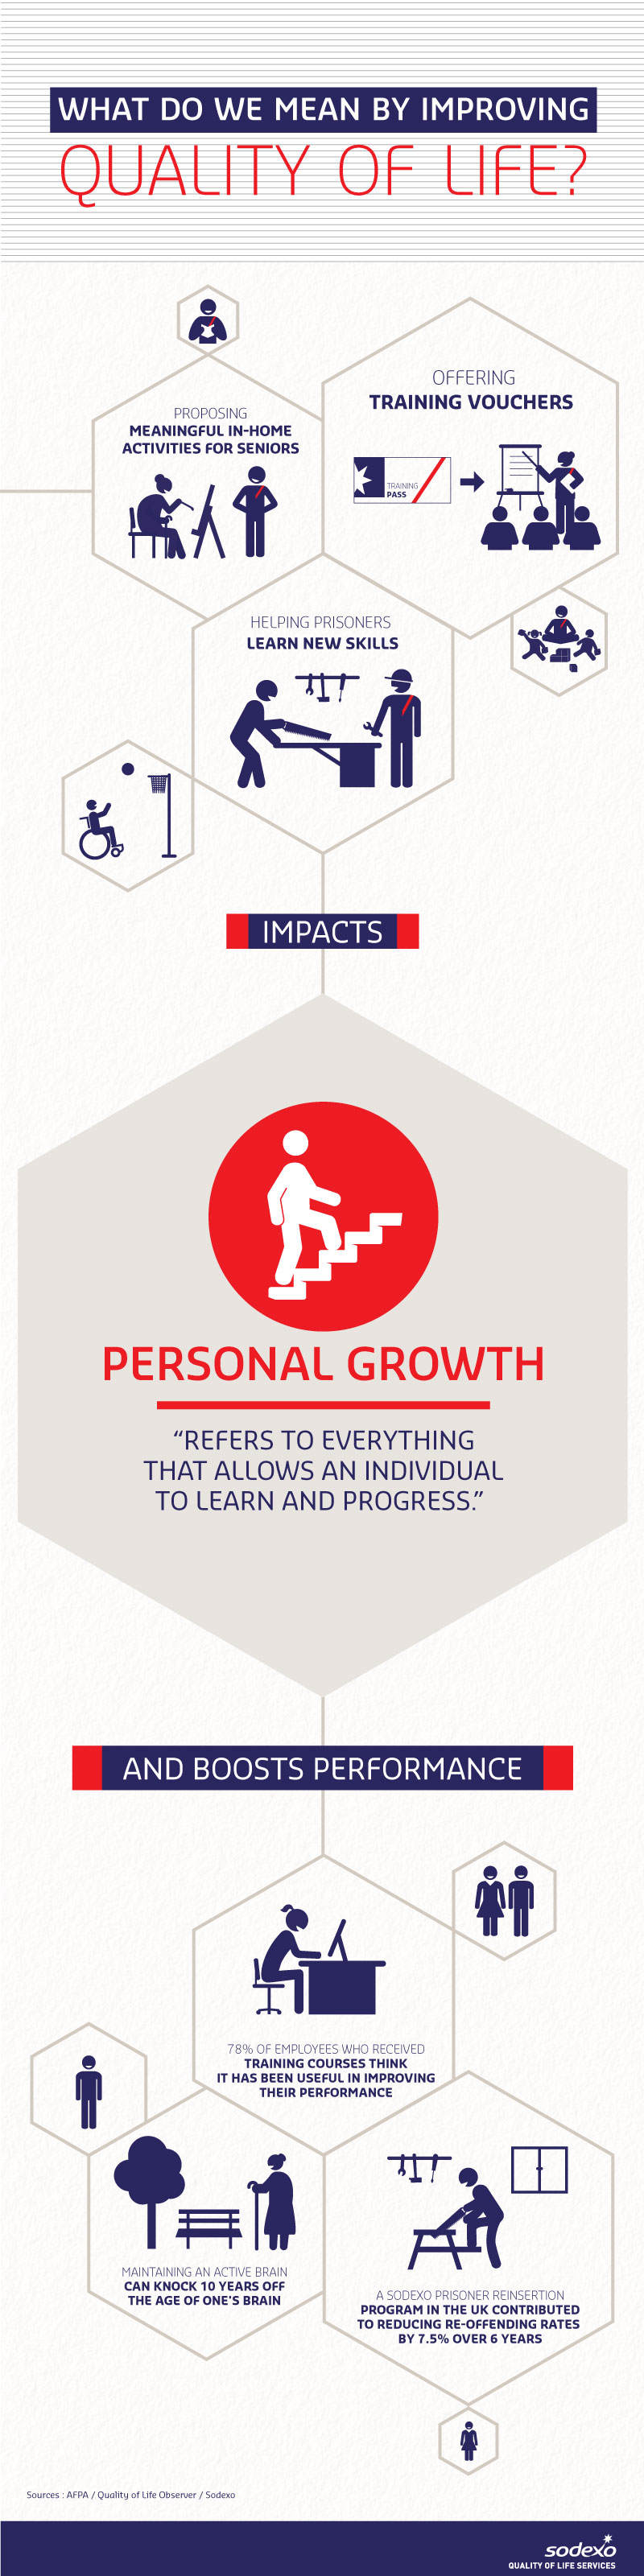 Personal-growth_EN.jpg (Quality of Life Dimension - Personal growth (infographic))